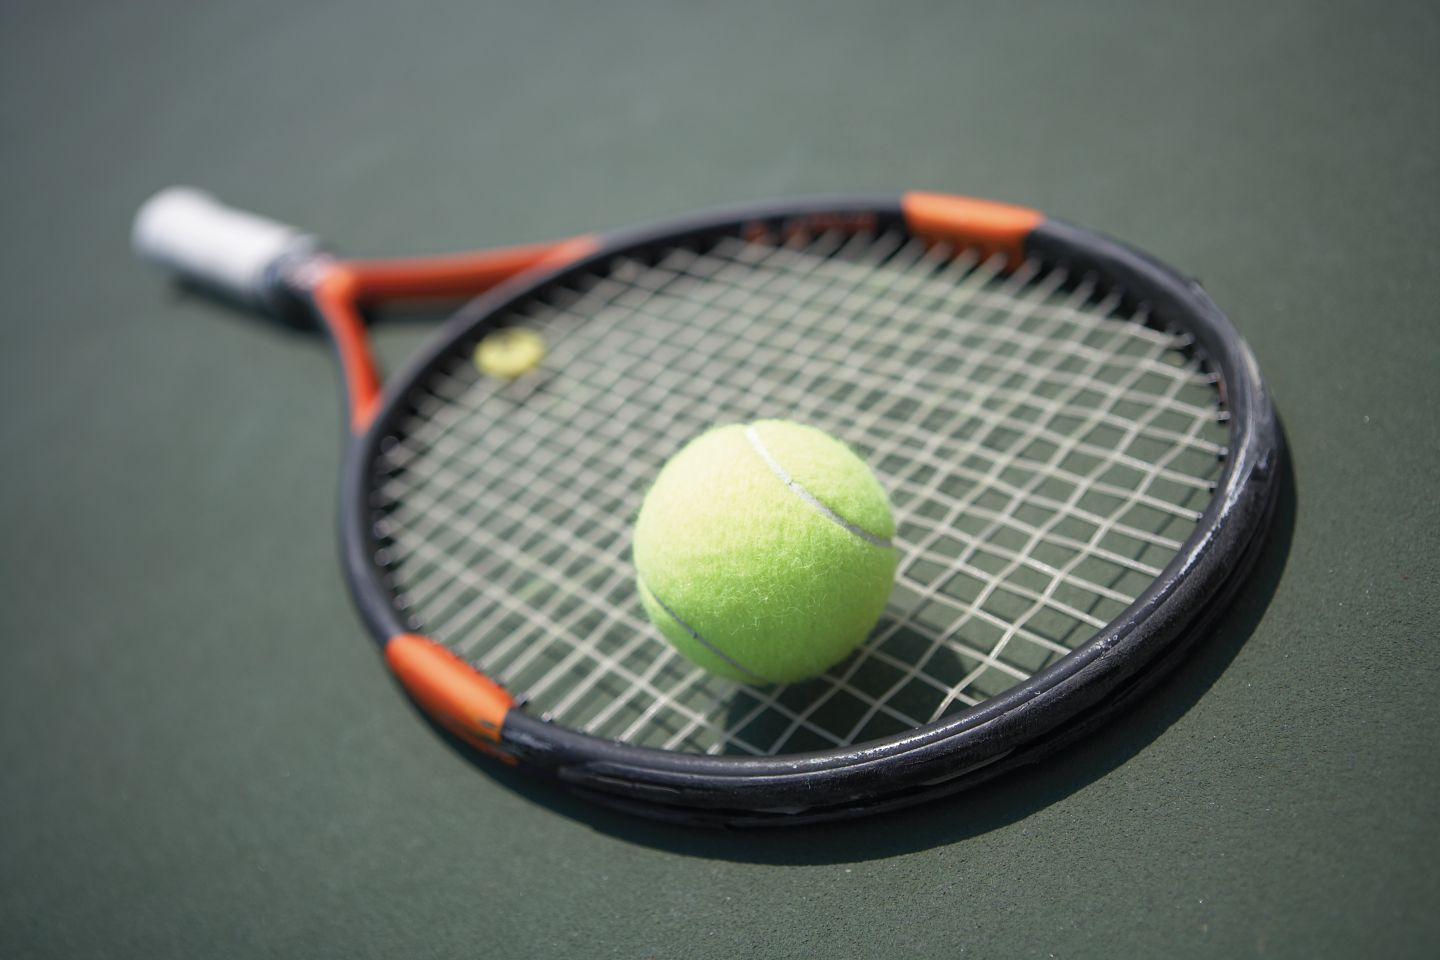 A tennis racquet and ball